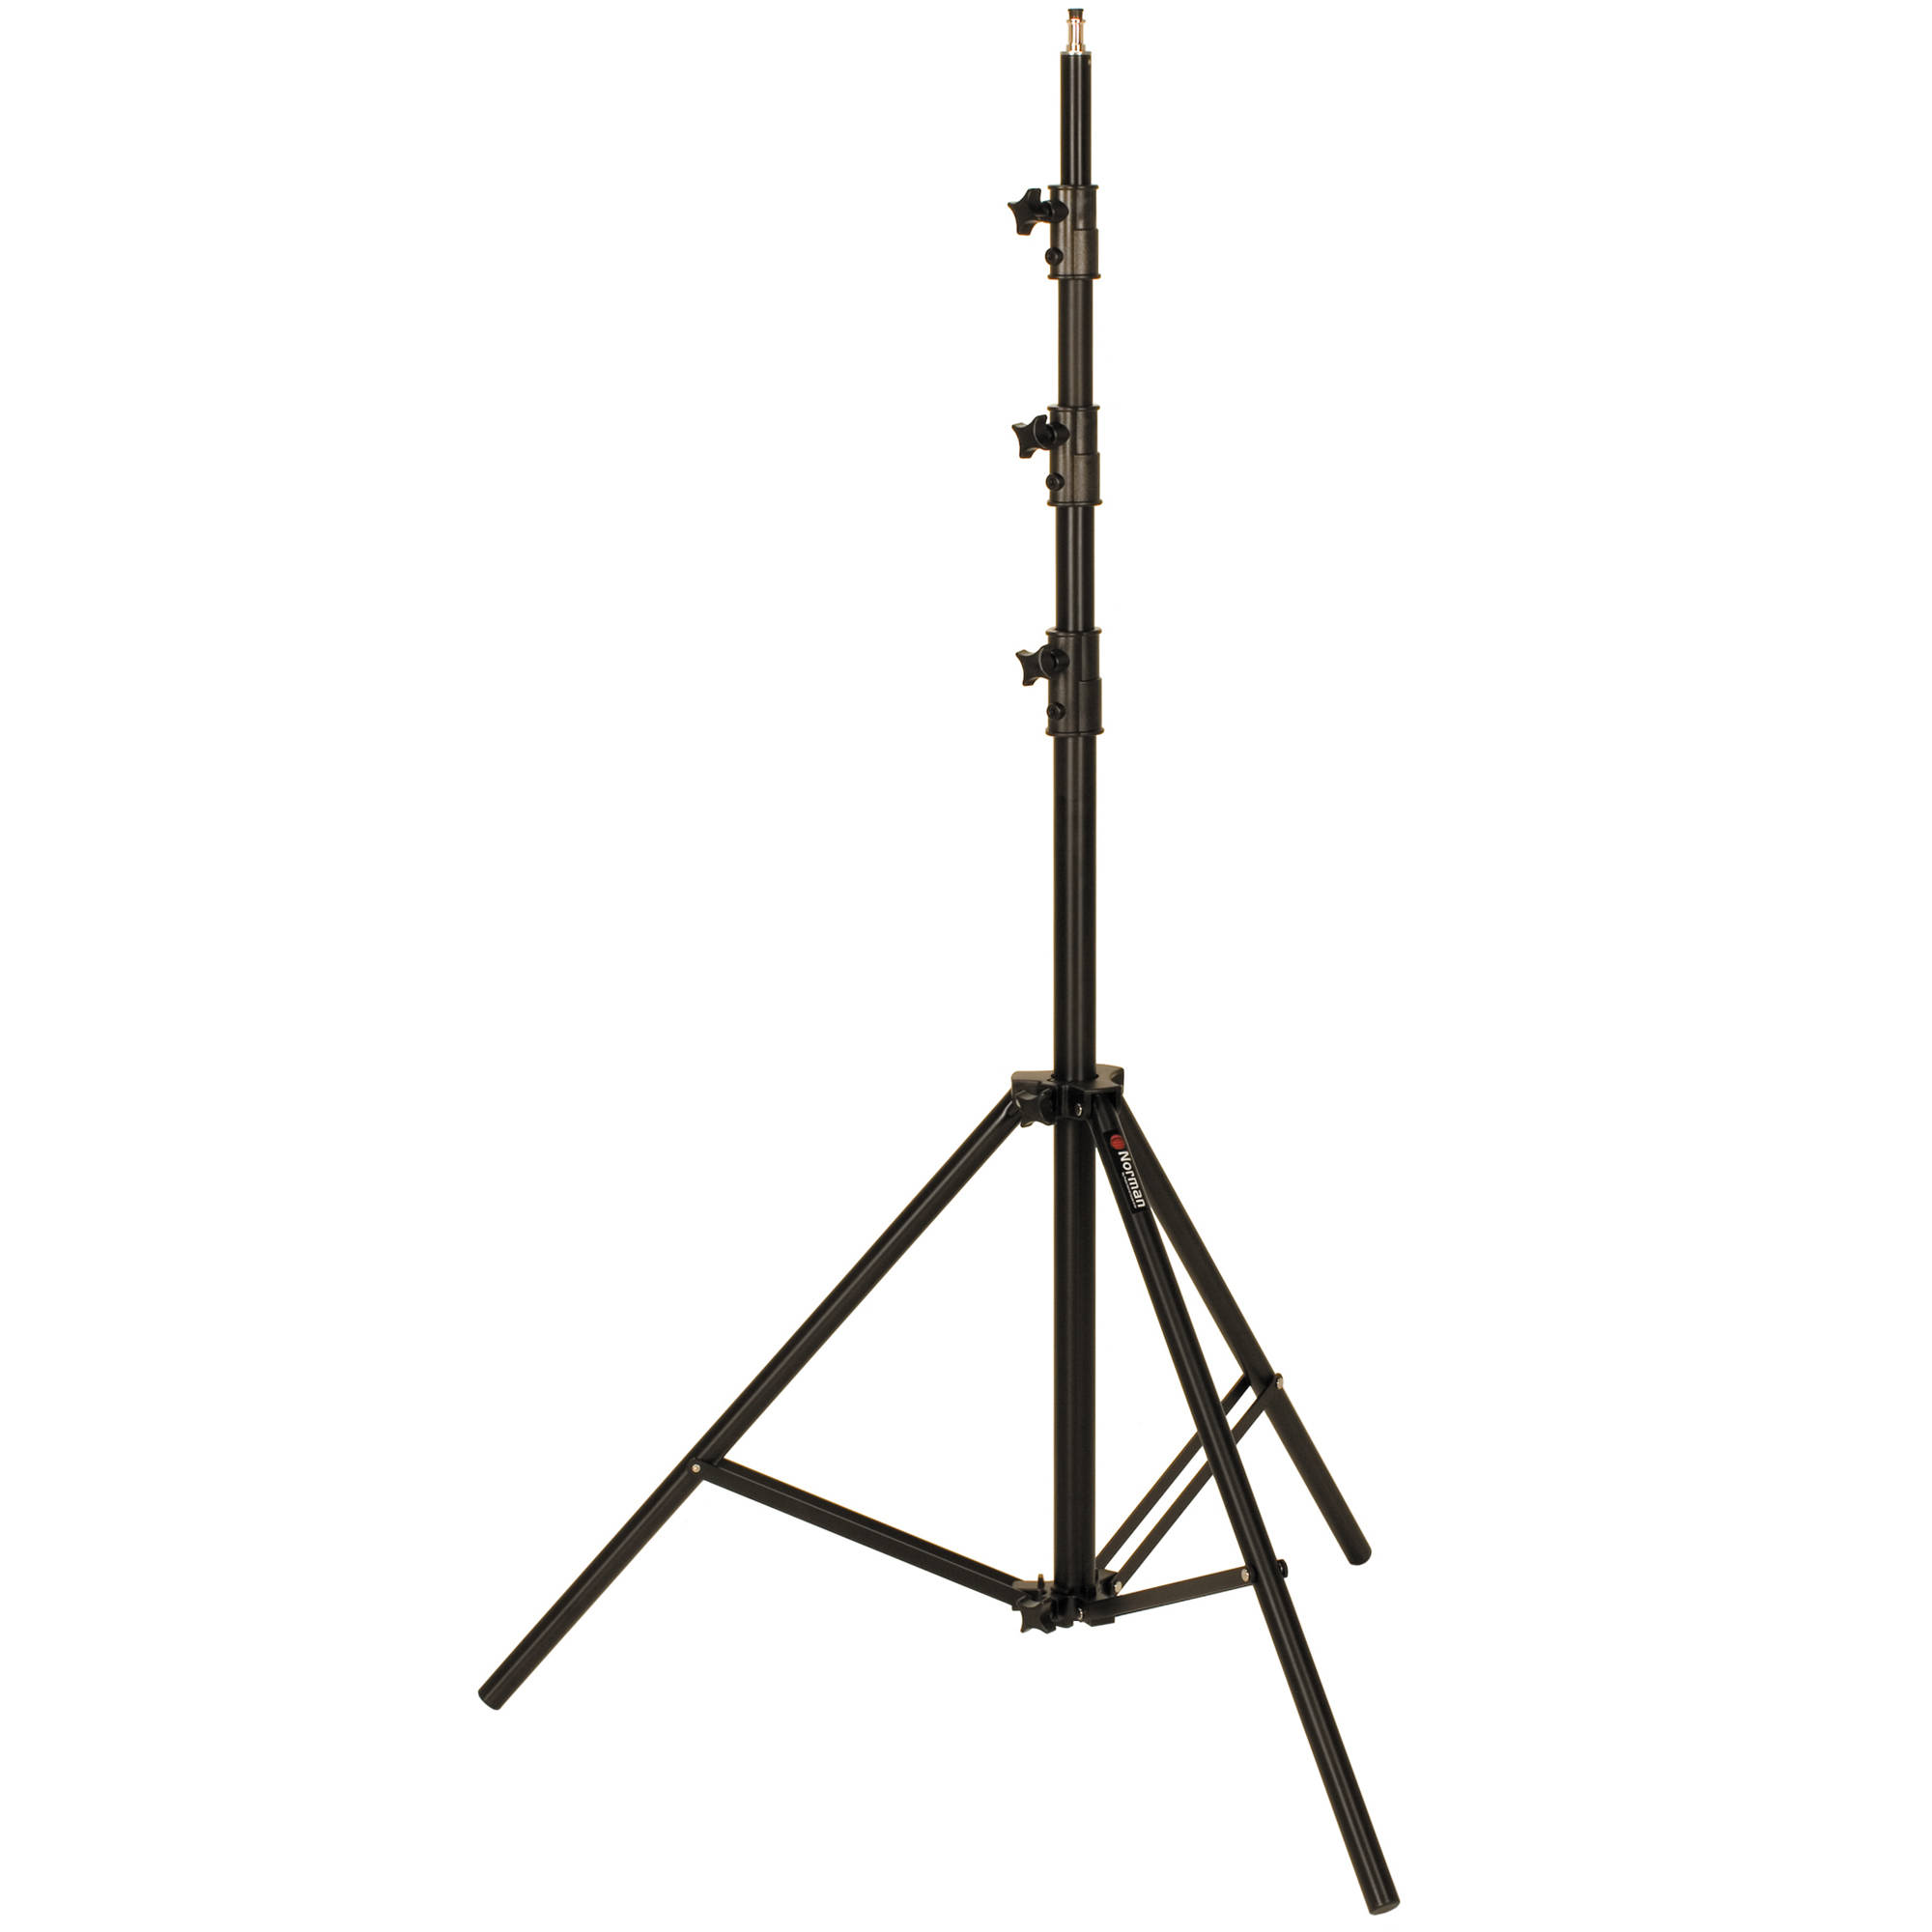 Norman Large Master Stand (12.75') 812283 B&H Photo Video